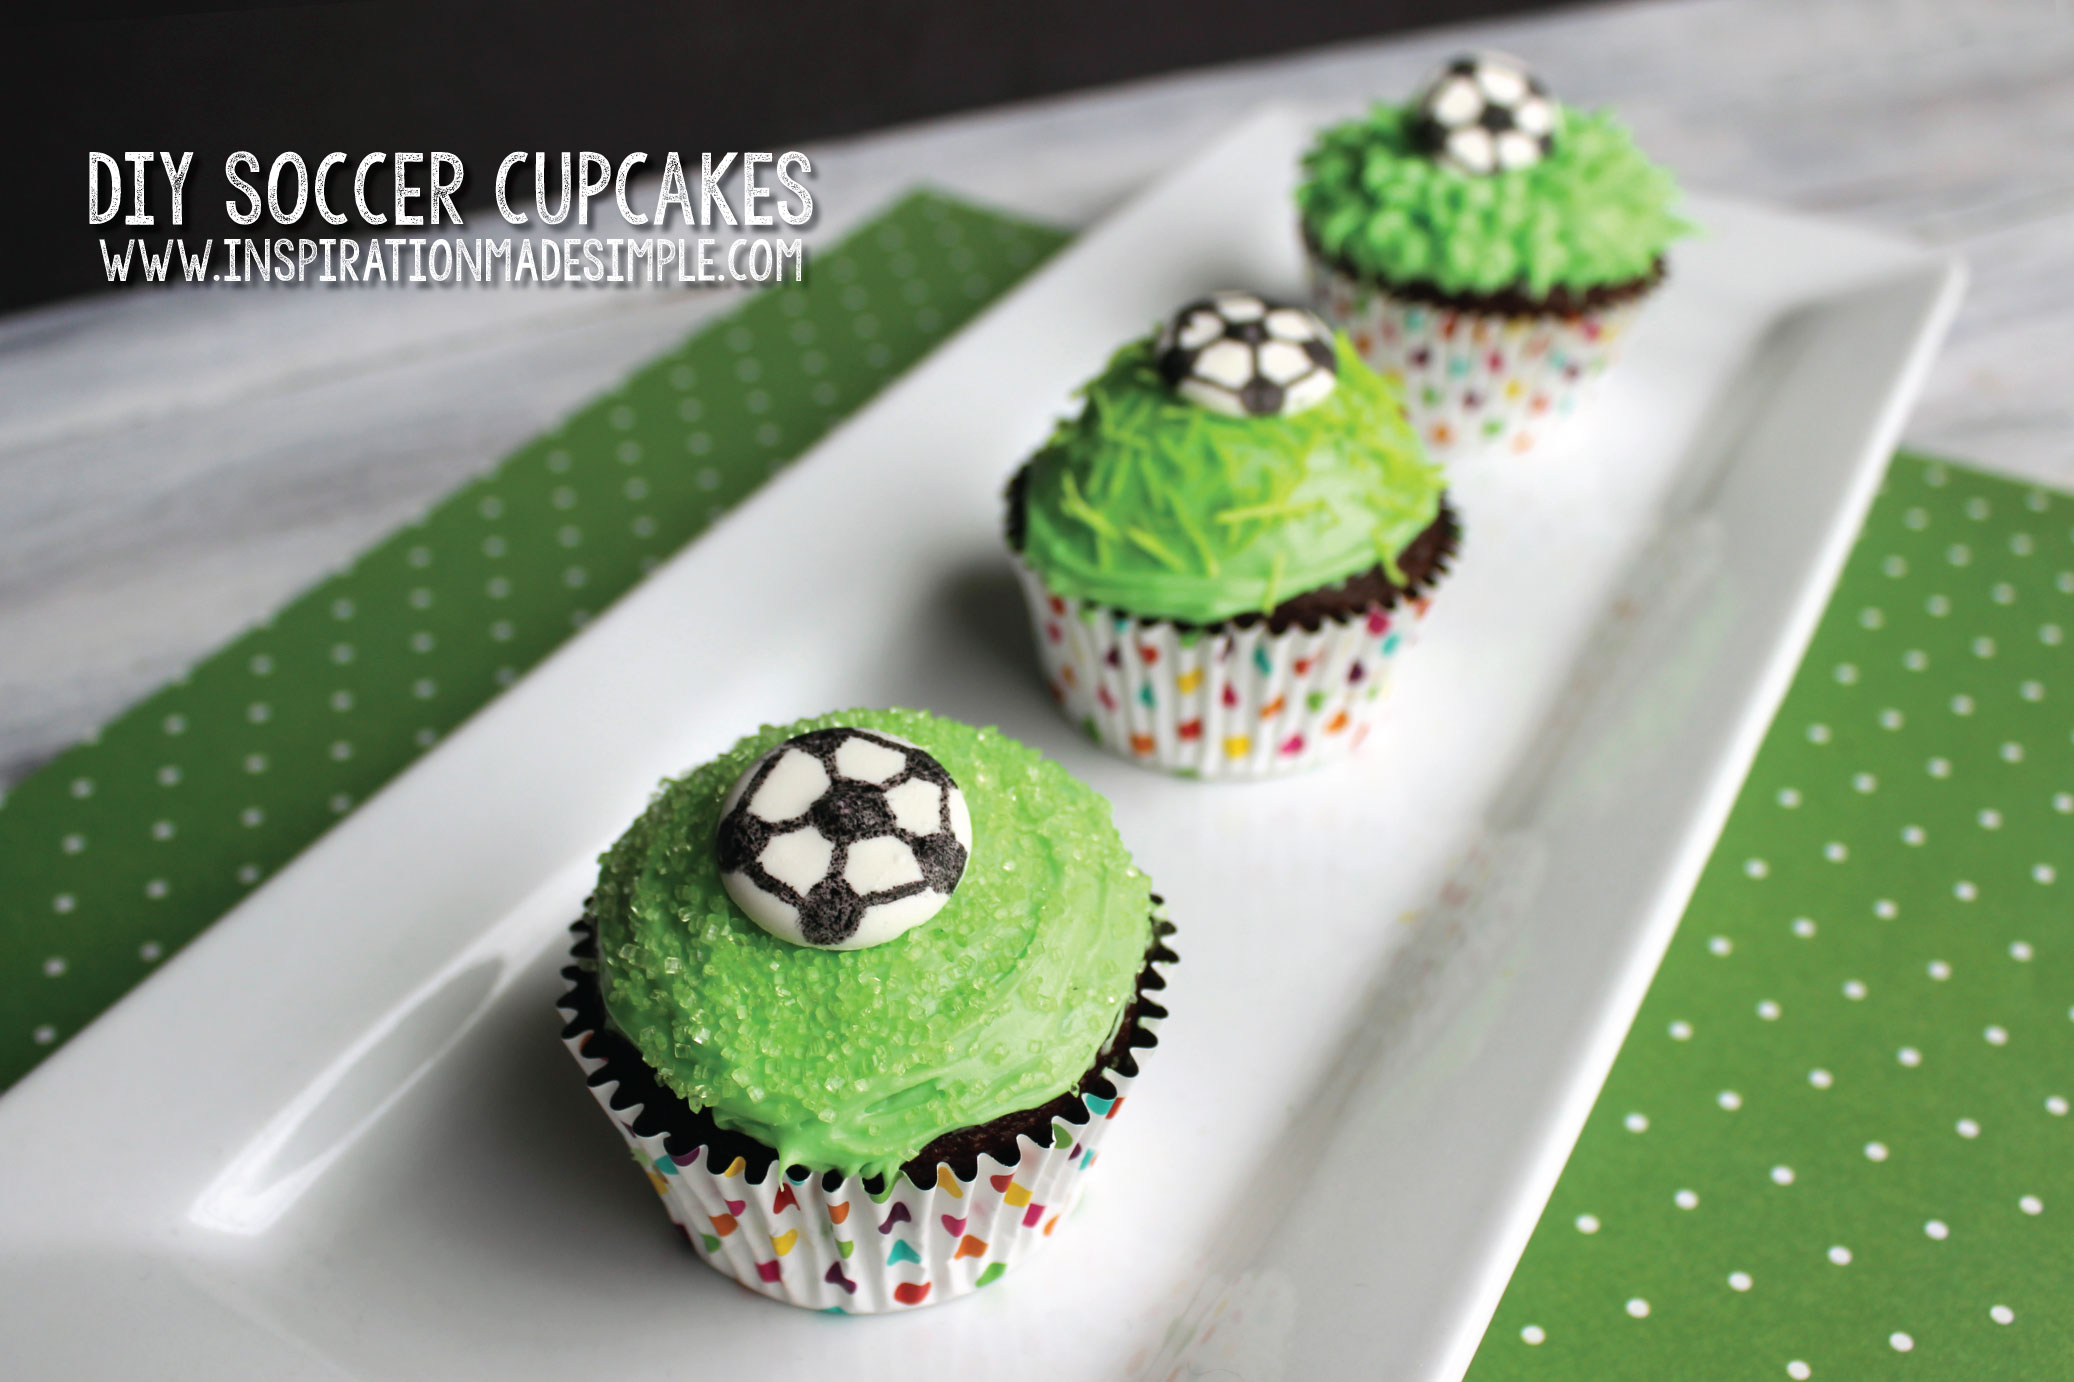 Simple DIY Soccer Cupcakes